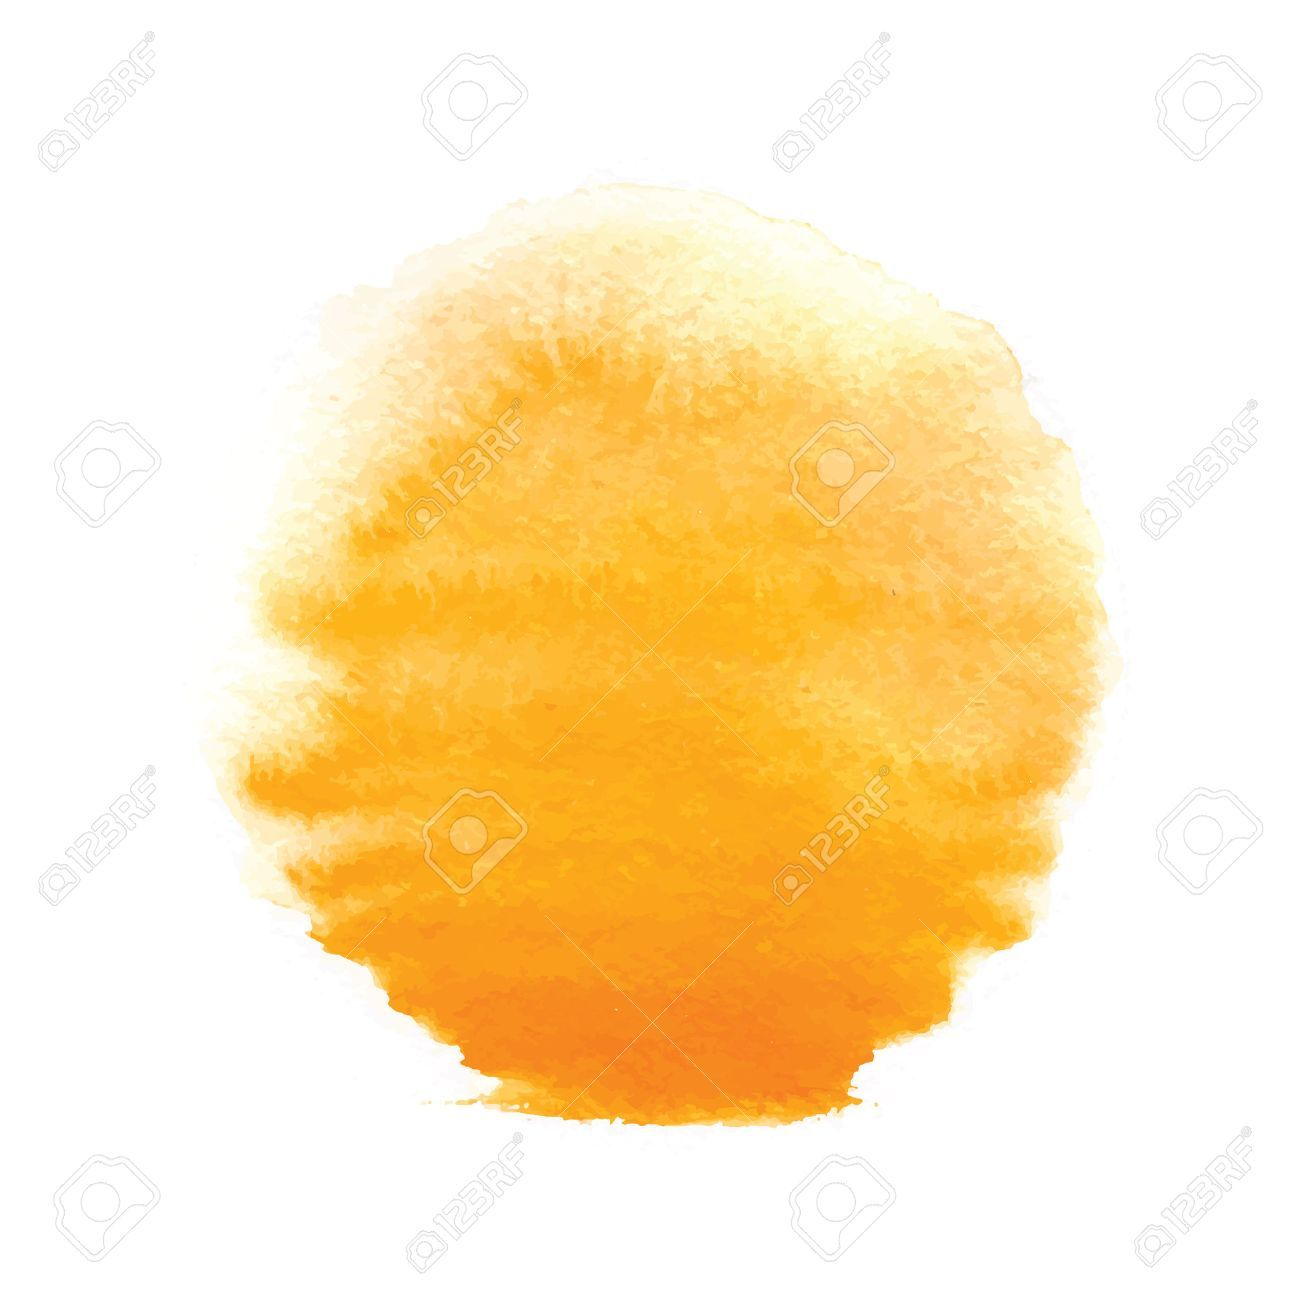 Watercolor Sun Vector Illustration Isolated On White Background